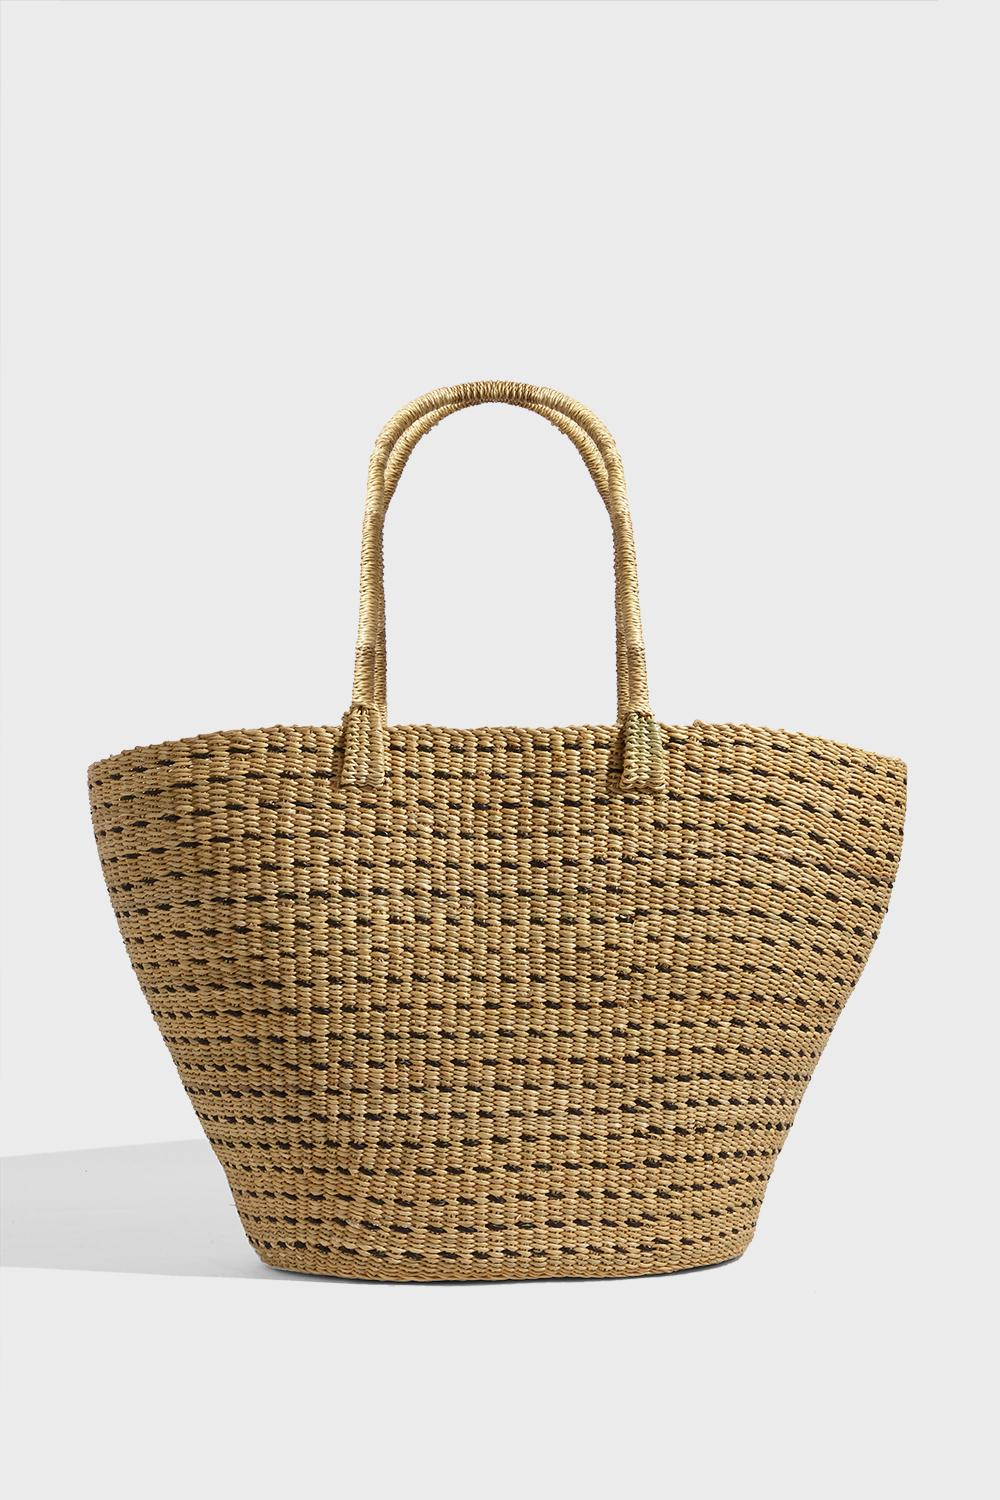 BLAISE HAND-WOVEN STRAW TOTE, SIZE OS, WOMEN, BEIGE